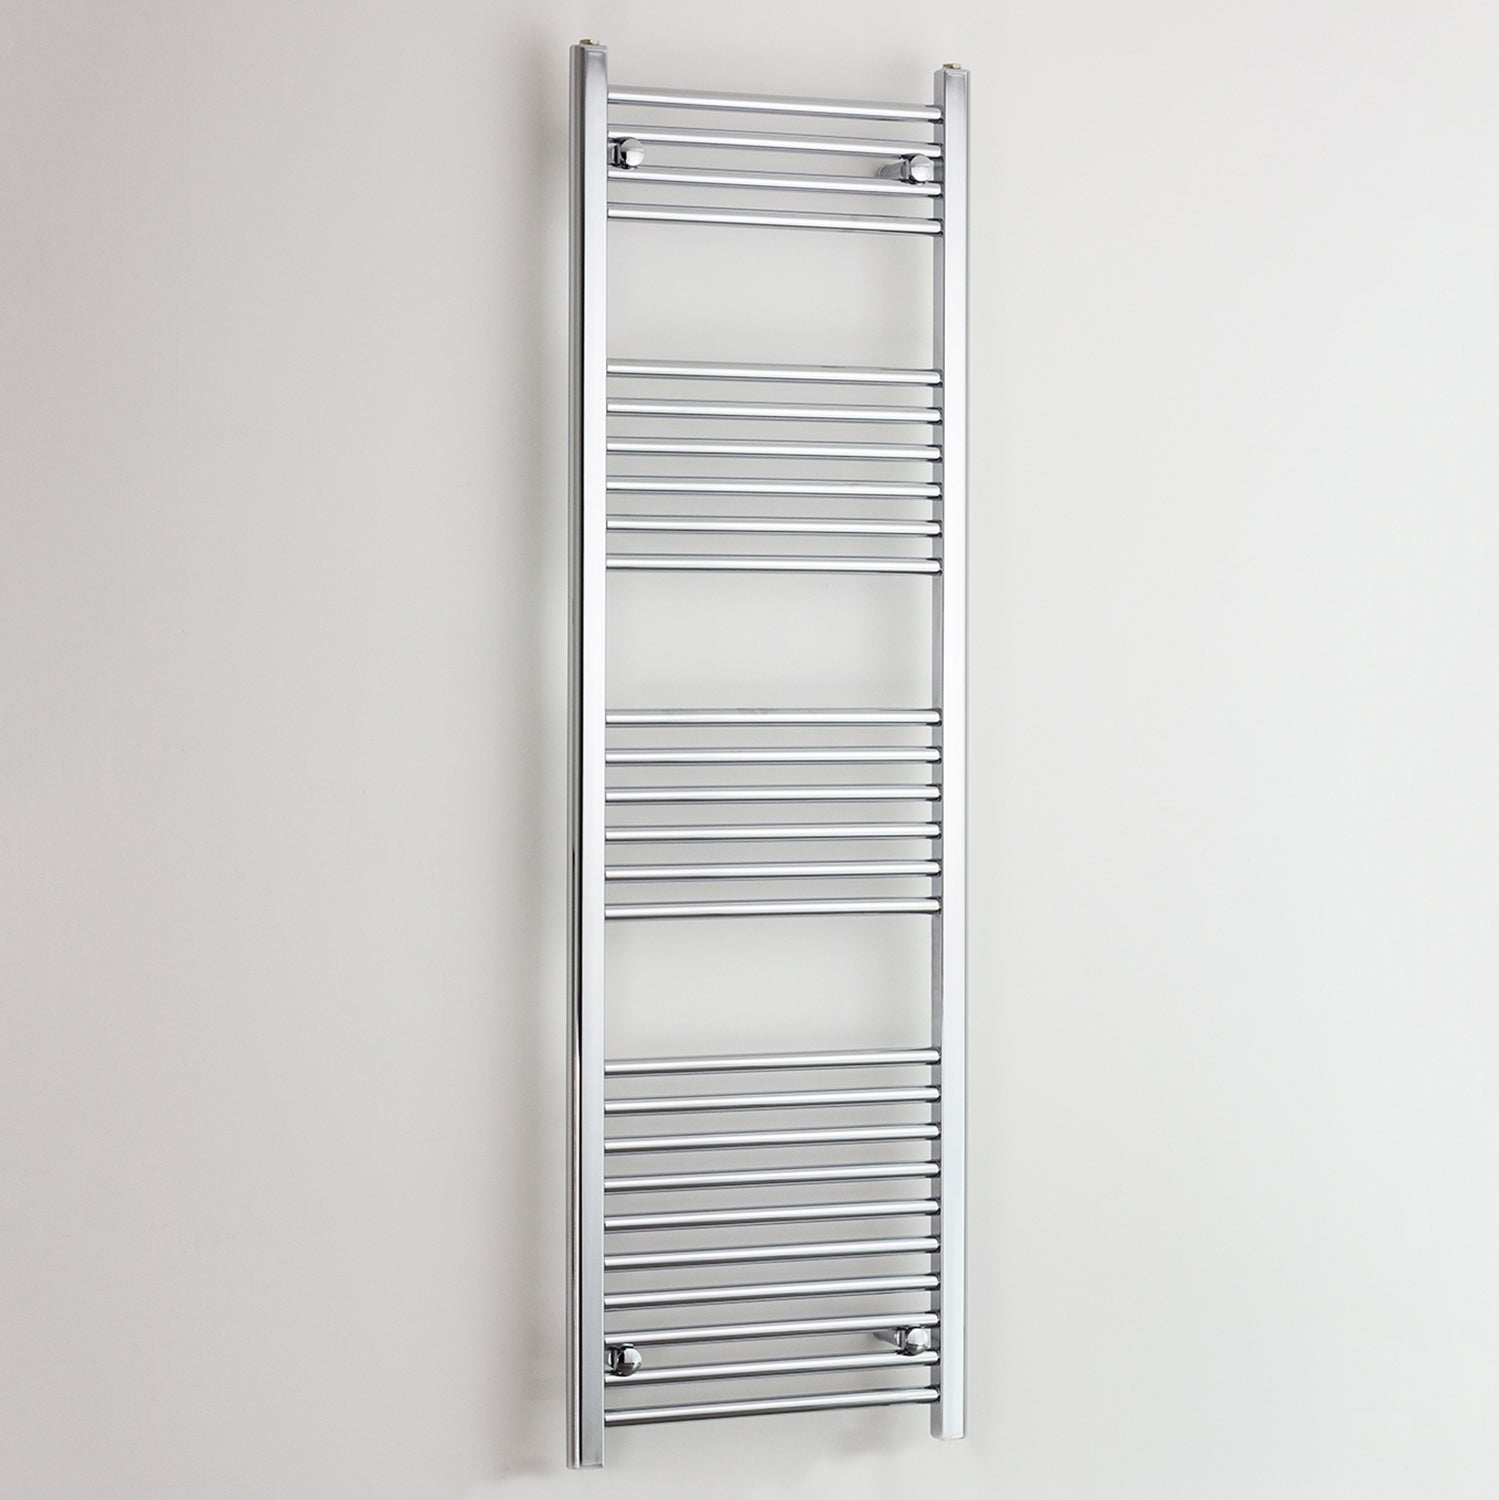 500mm Wide 1600mm High Flat Chrome Heated Towel Rail Radiator HTR,Towel Rail Only